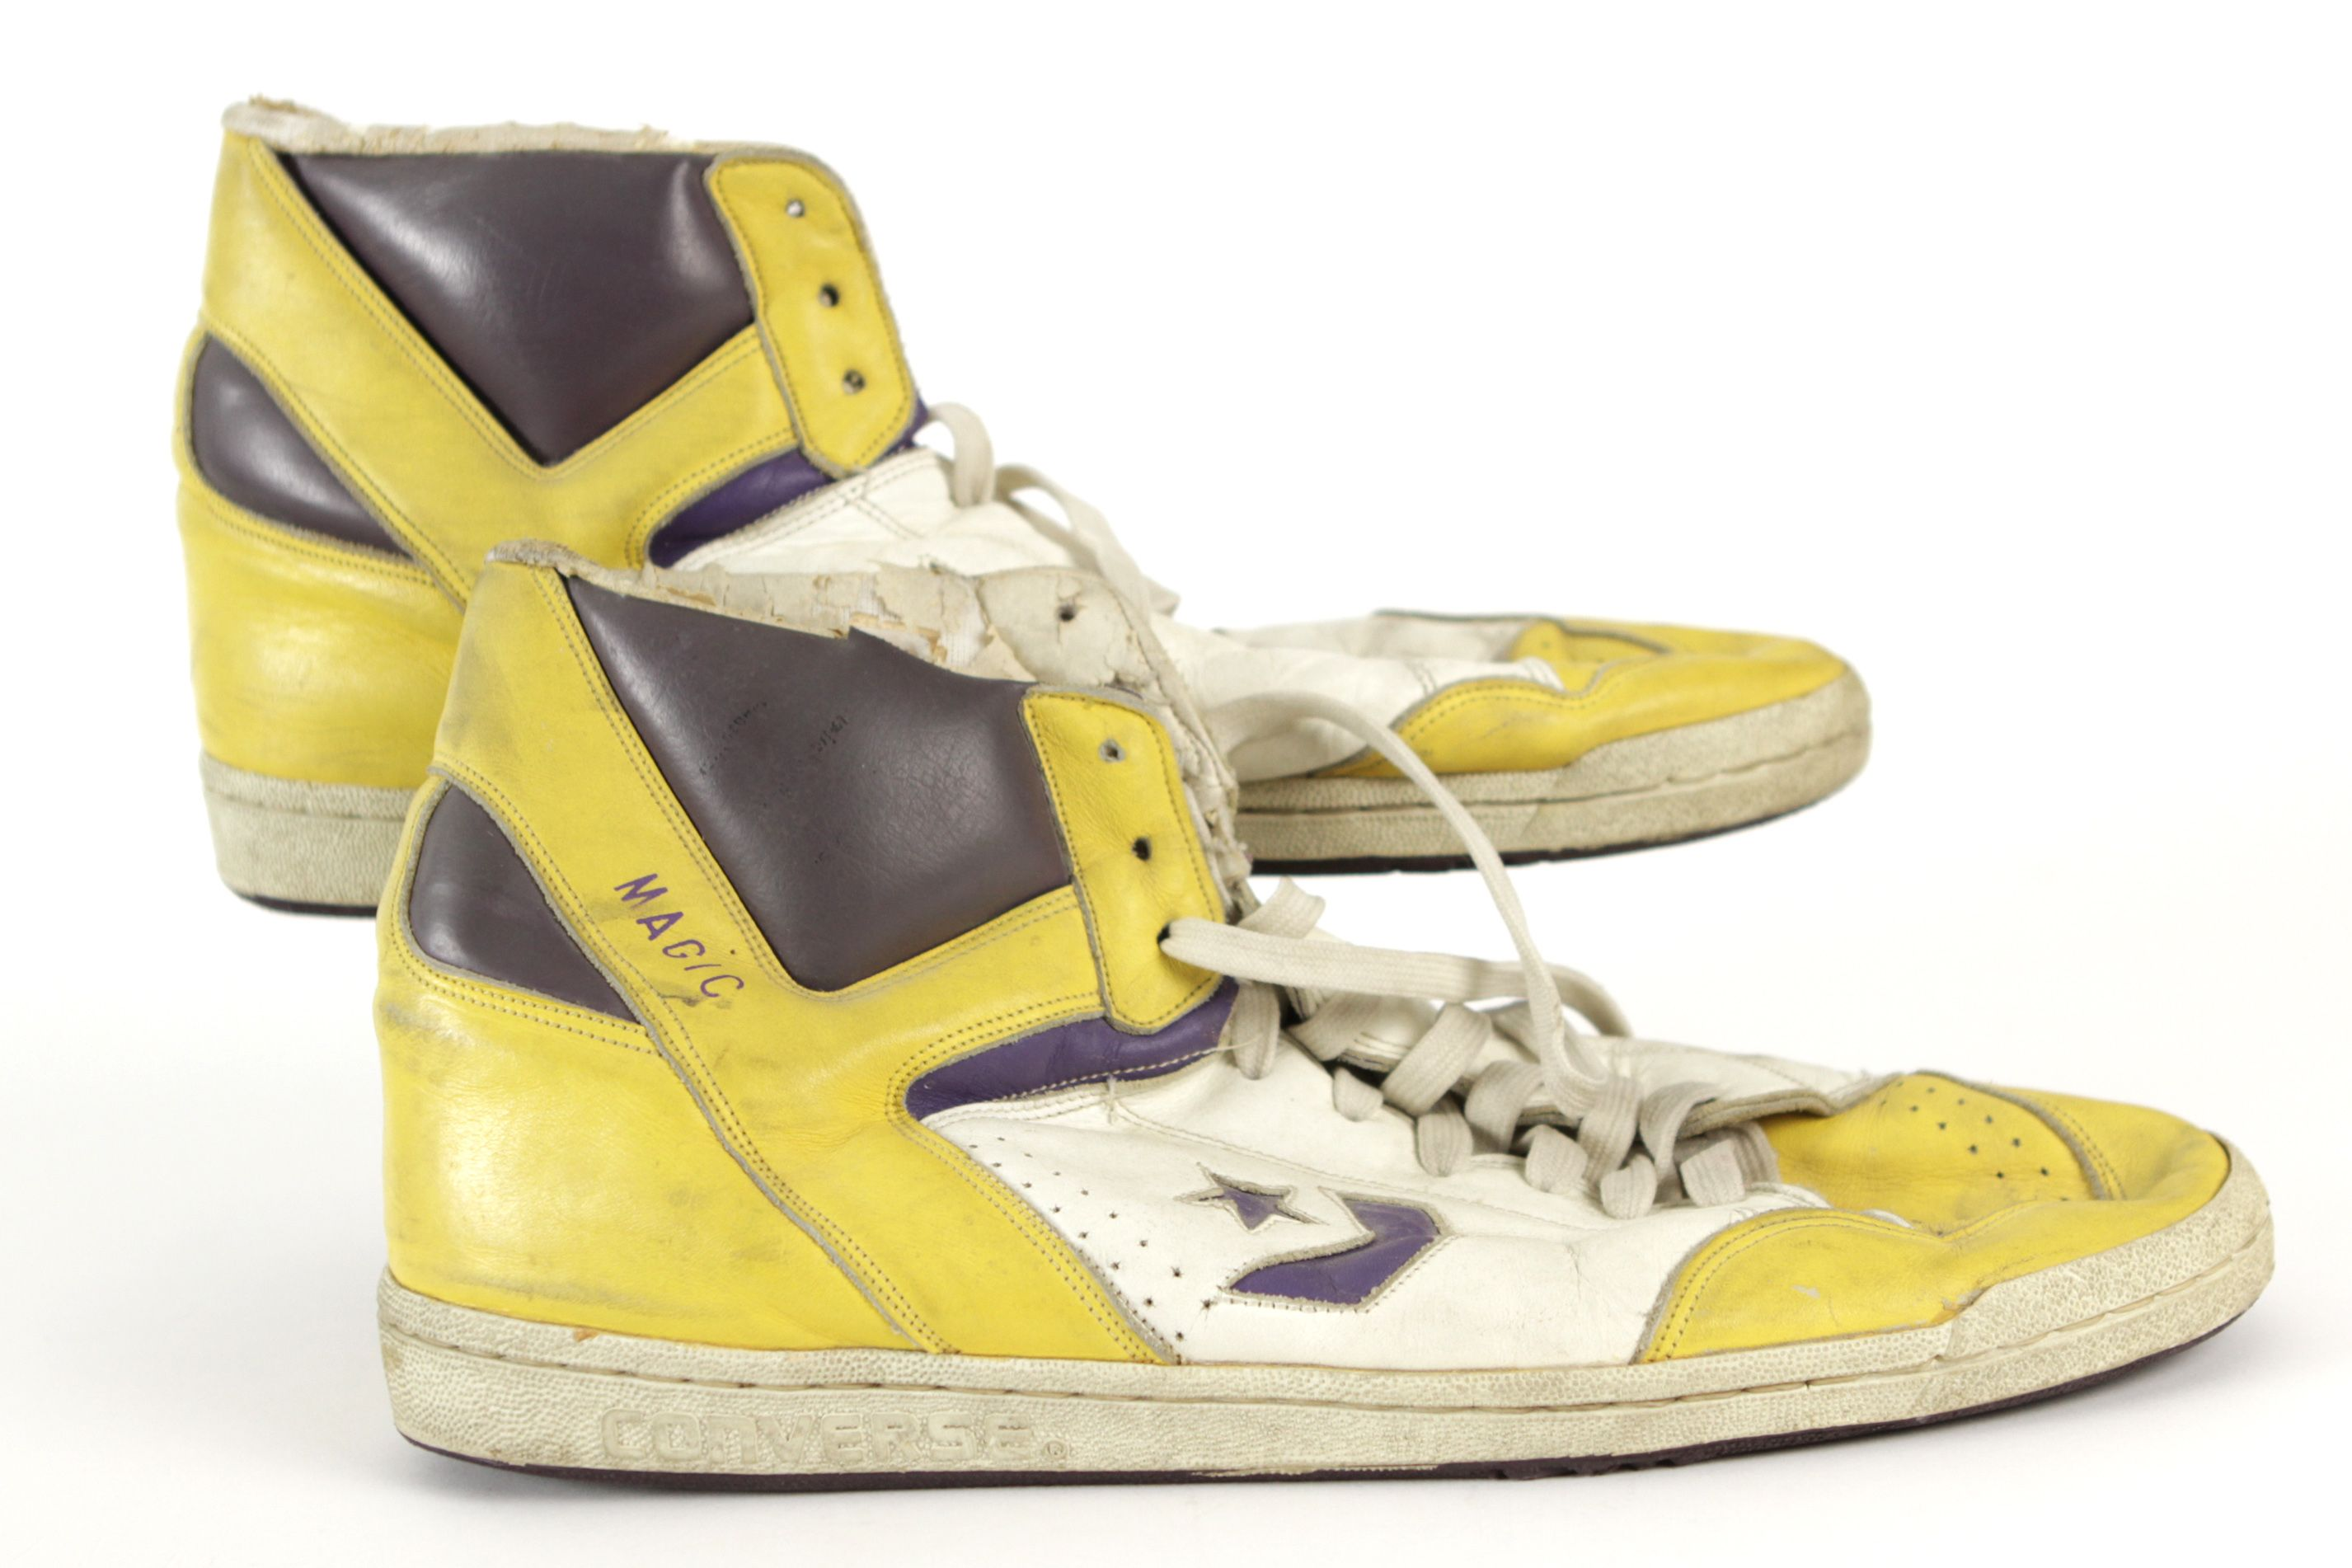 ed5ffb2c8534 Lot Detail - 1986-87 Magic Johnson Los Angeles Lakers Game Worn Converse  Shoes (MEARS LOA)